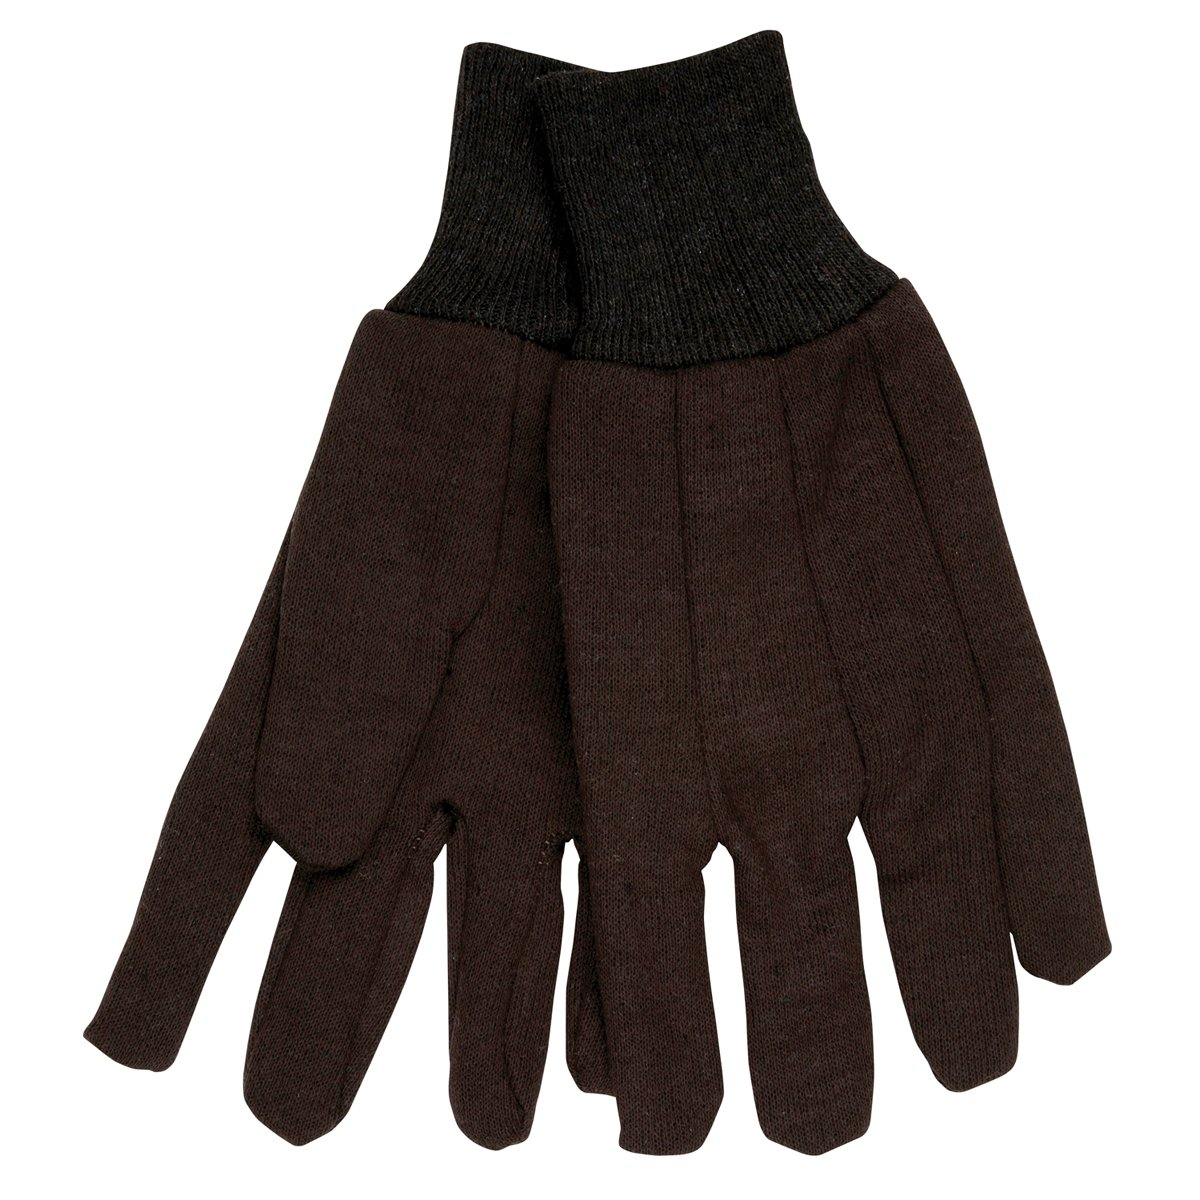 Memphis 7100 Brown Jersey Work Gloves (300 Pair) (1 Case) by Memphis Gloves (Image #1)